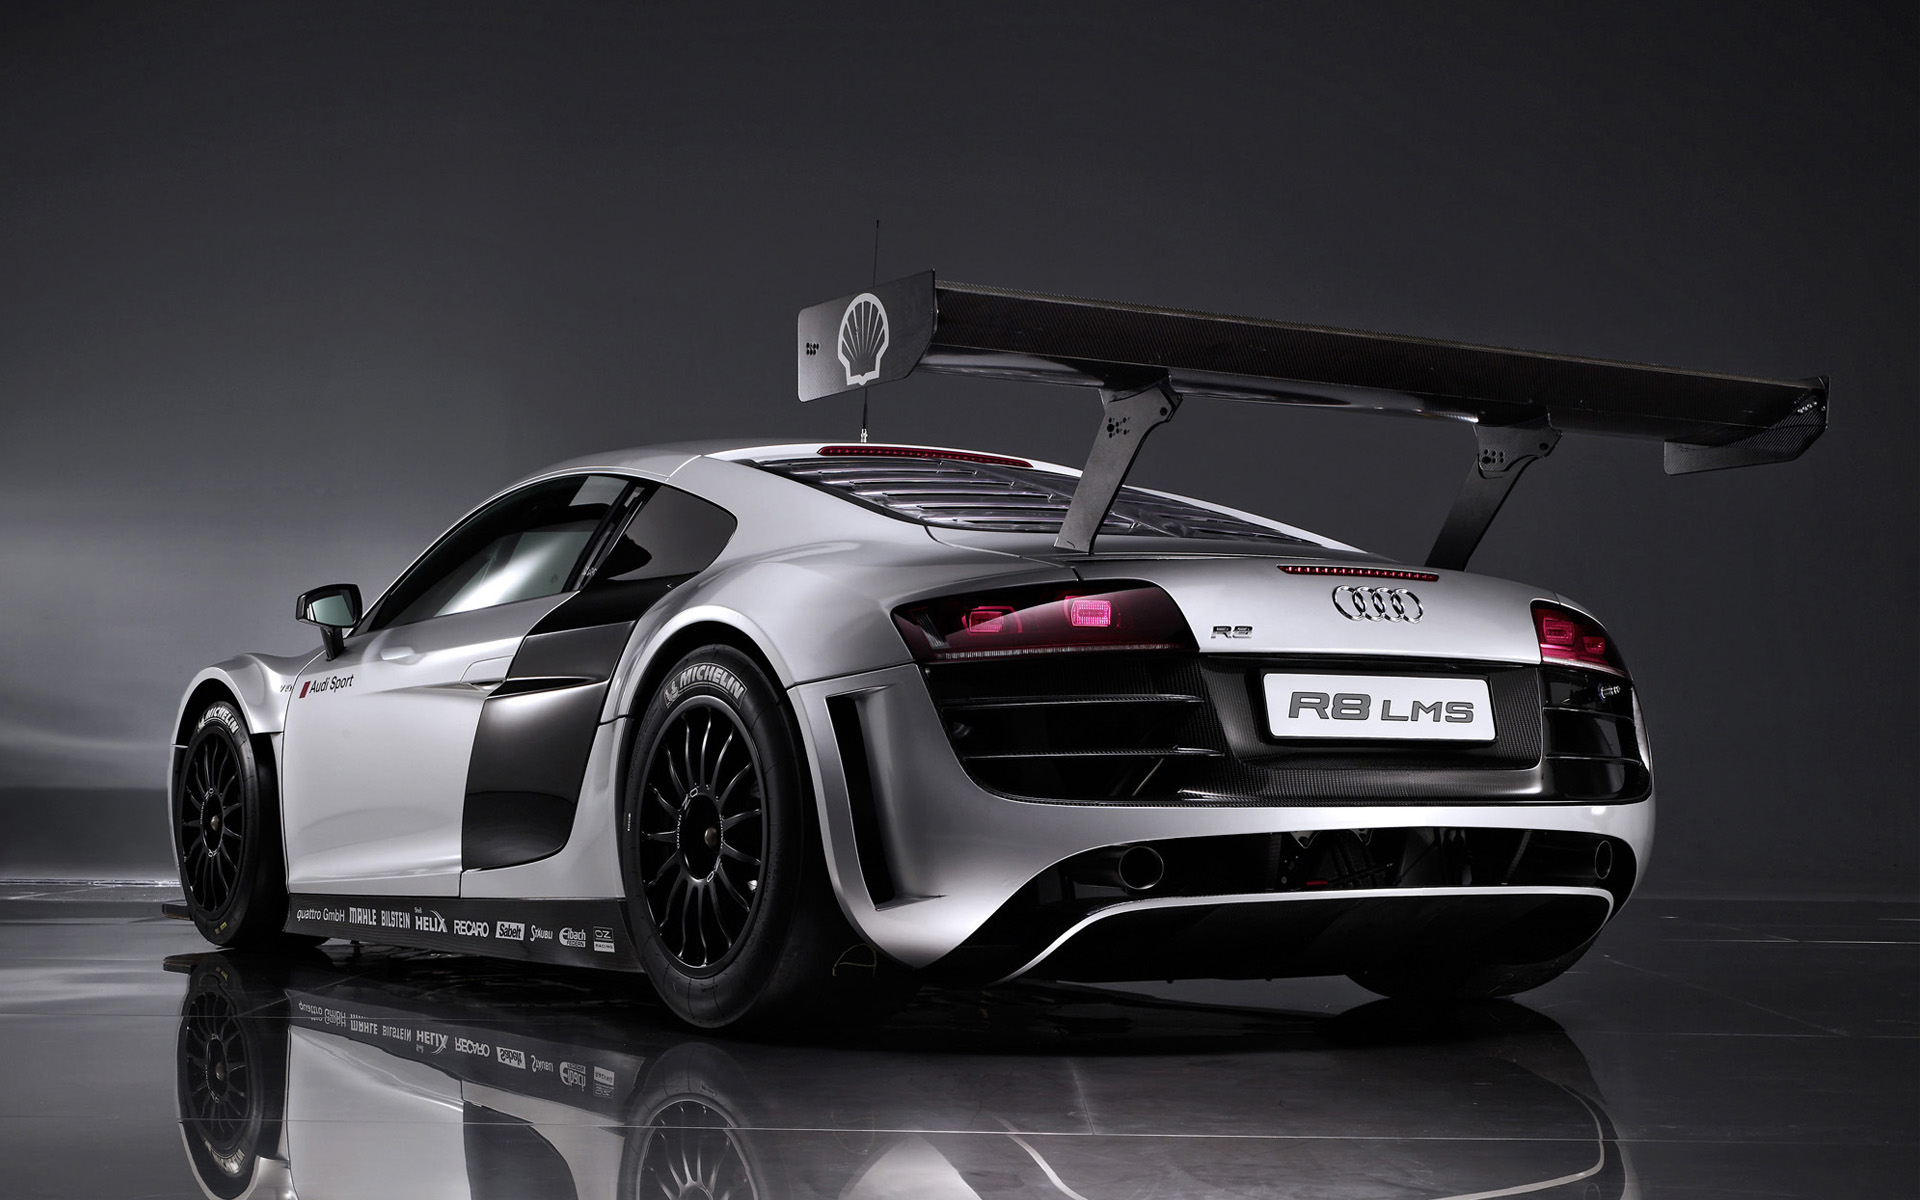 2010 Audi R8 LMS Wallpapers HD Wallpapers 1920x1200